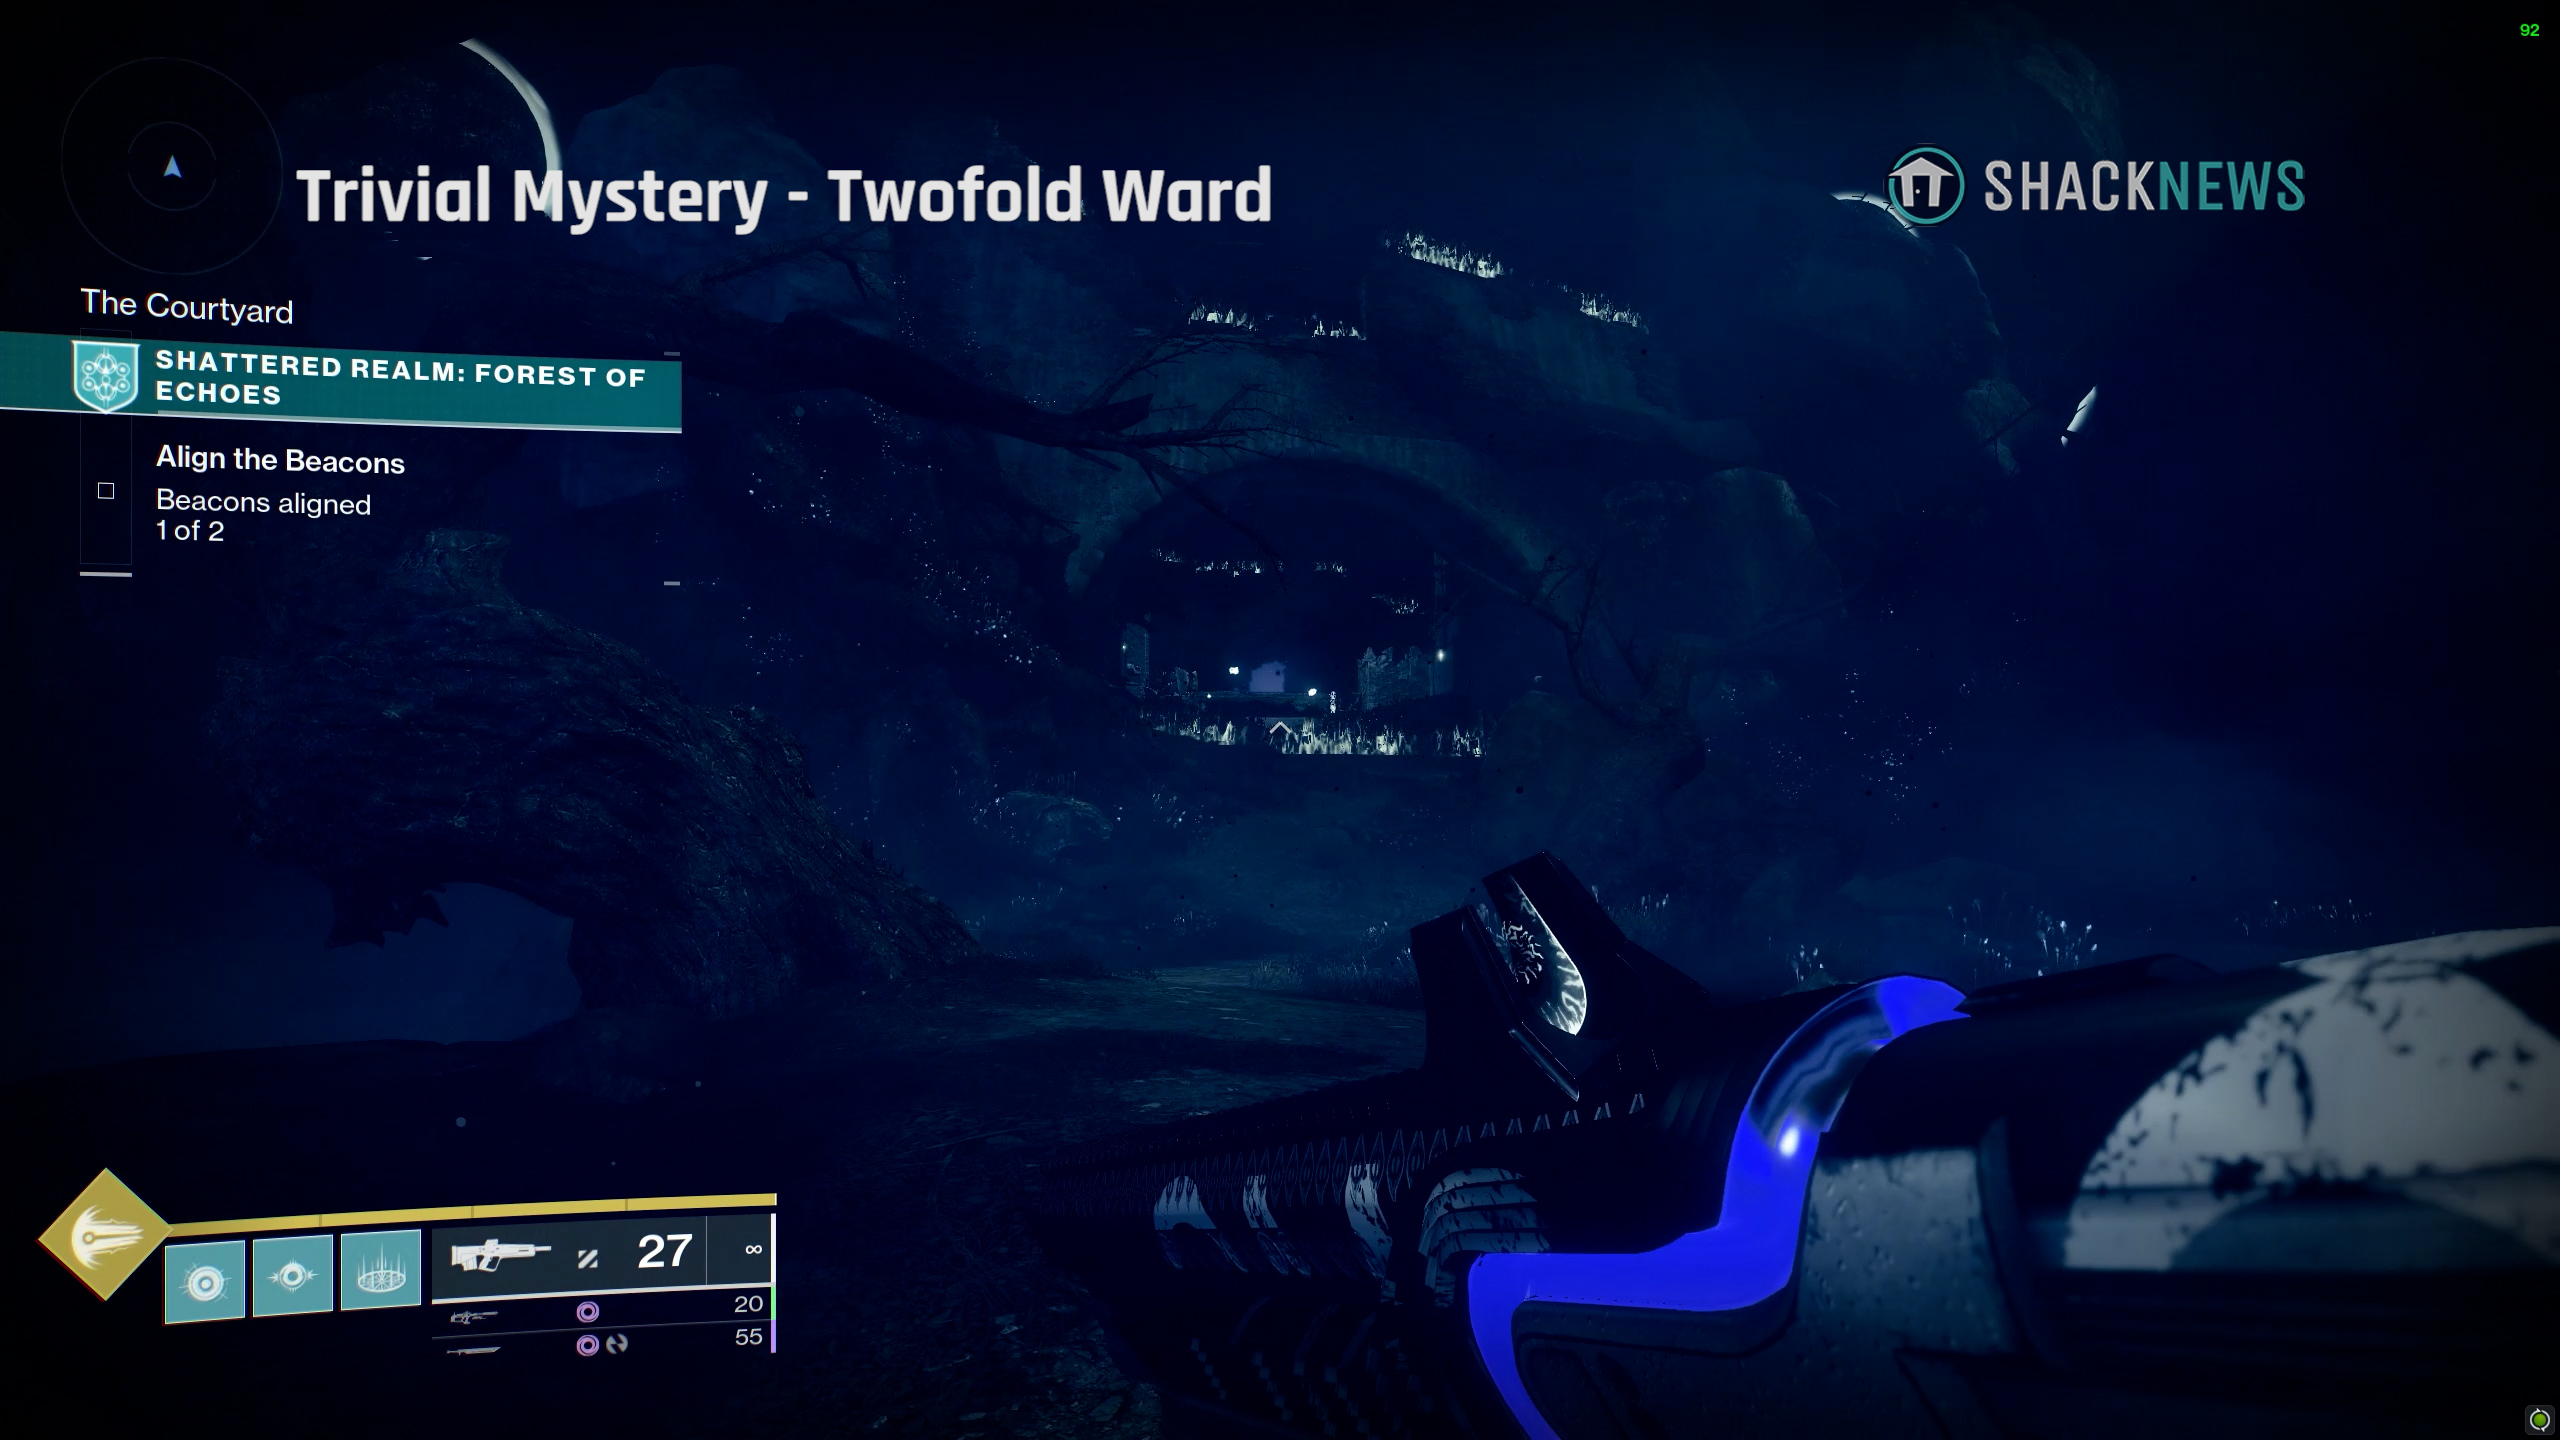 destiny 2 trivial mystery twofold ward